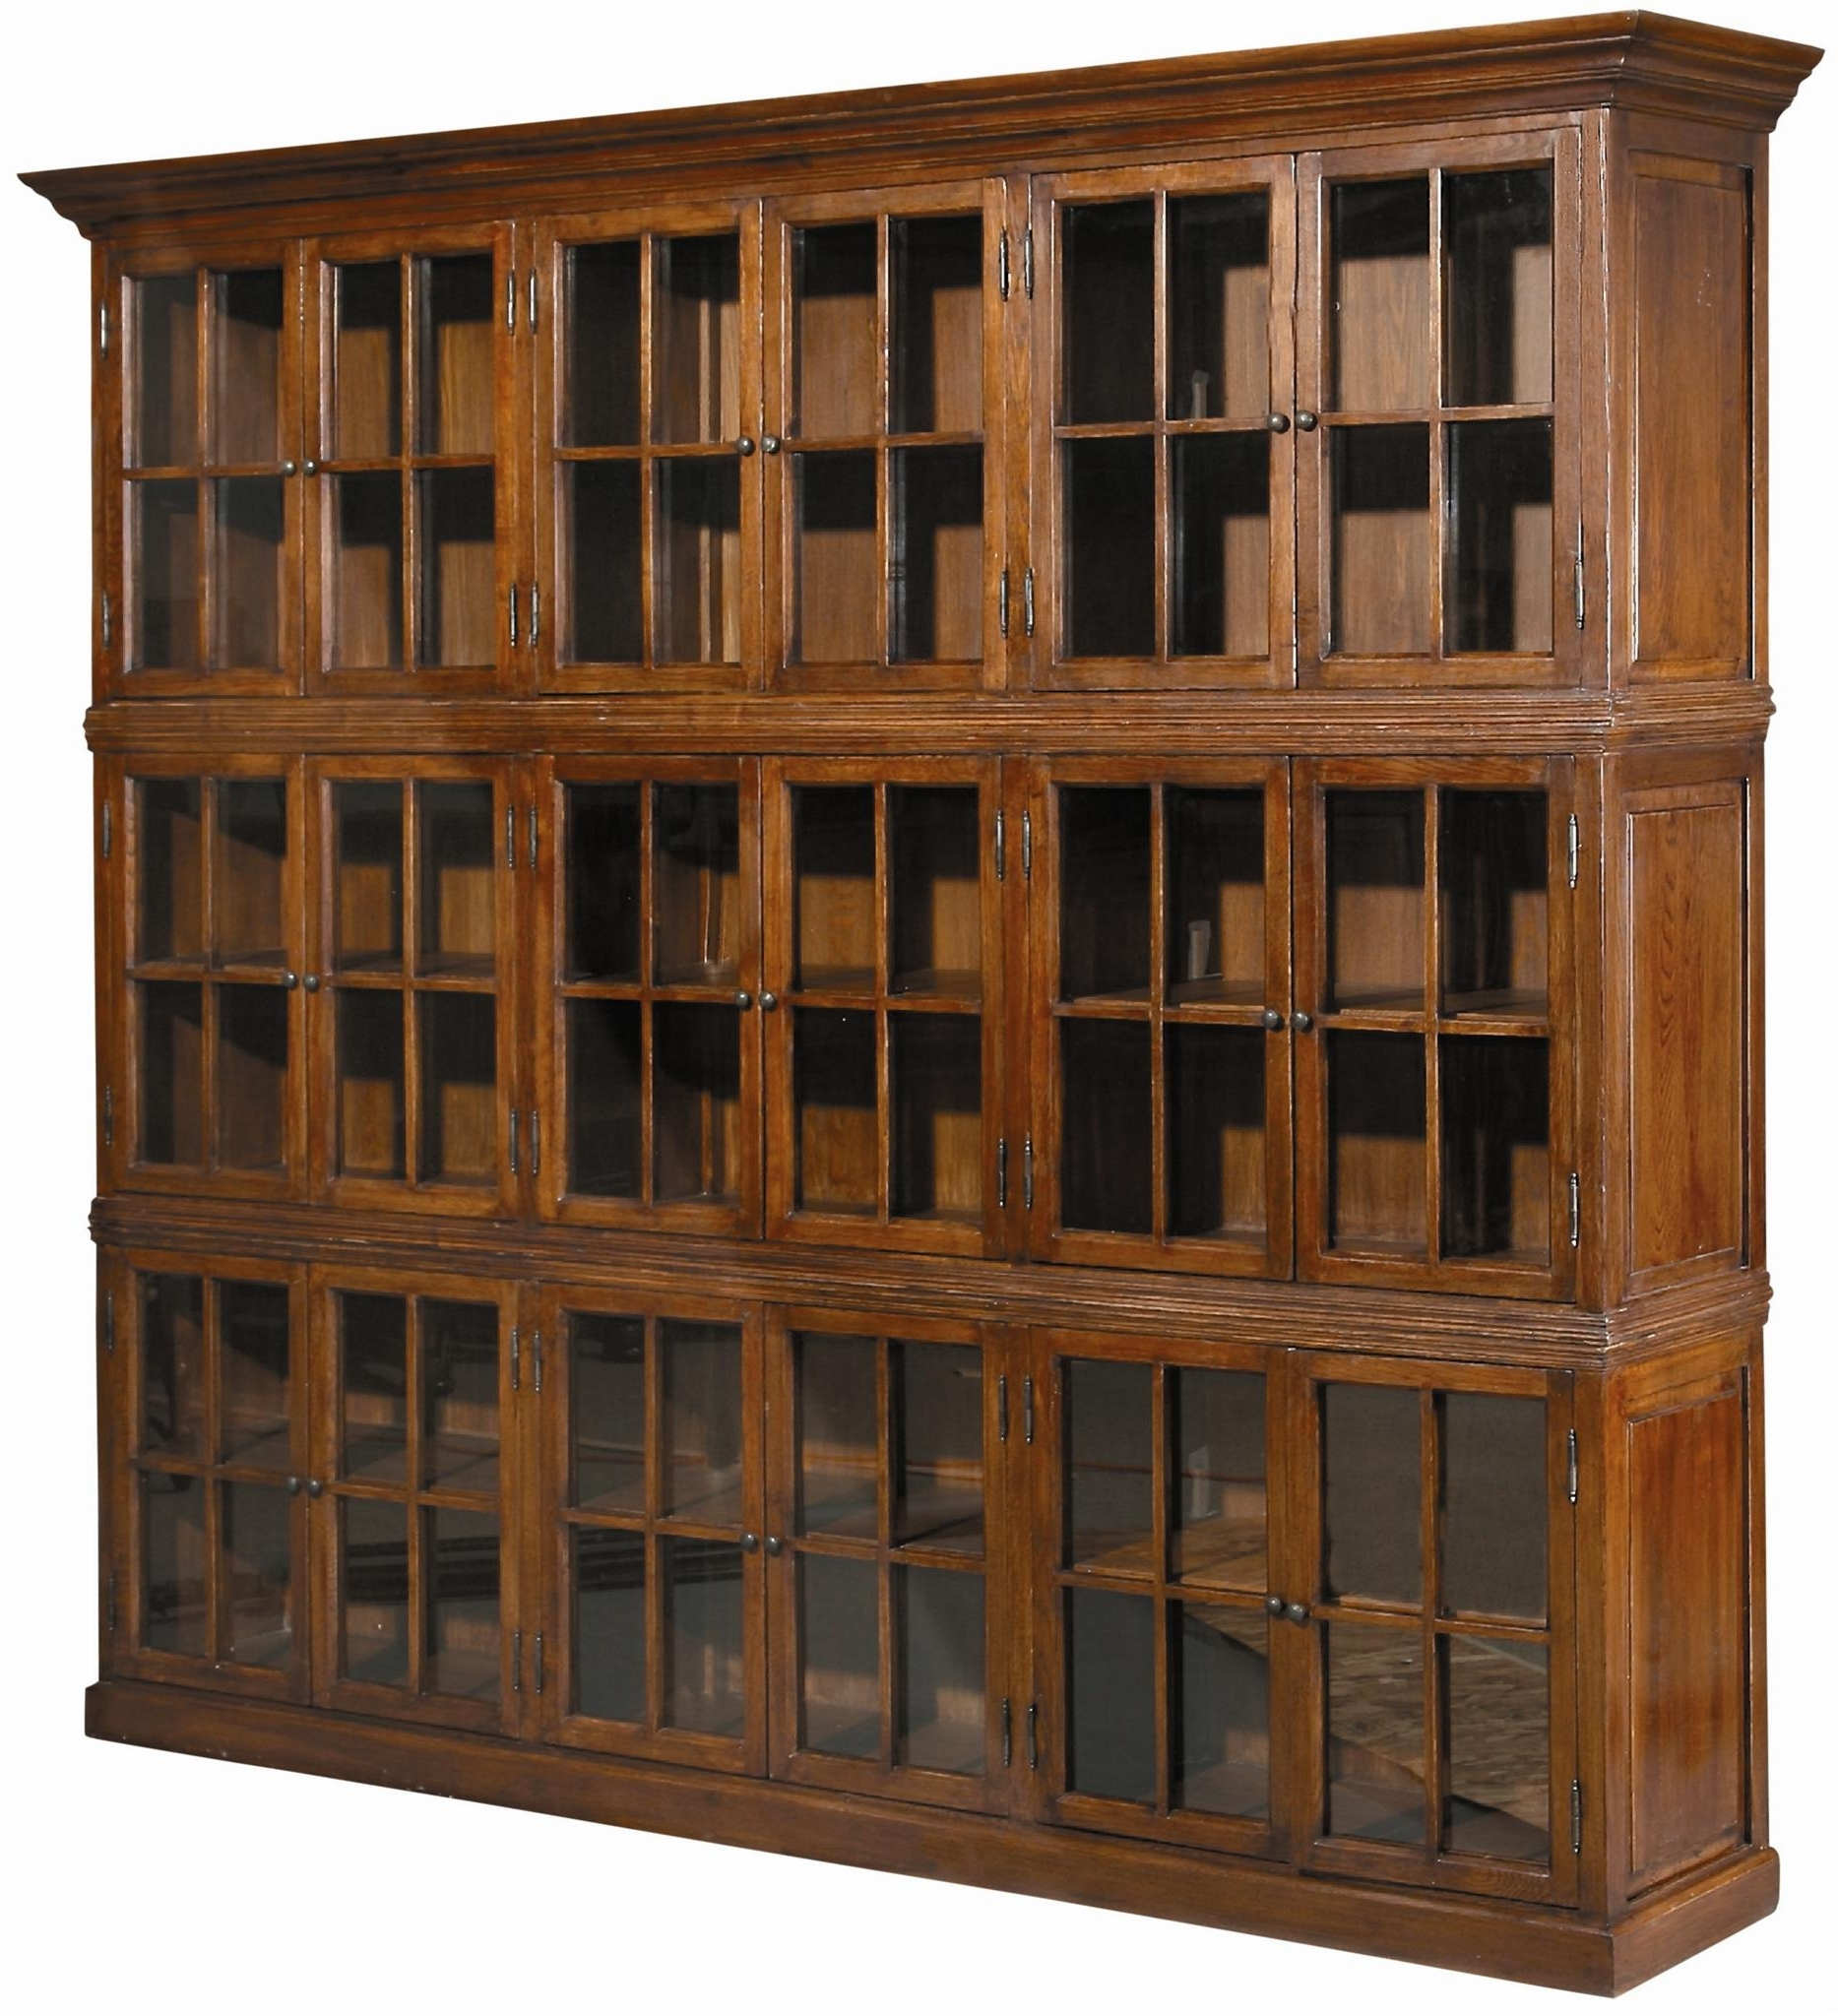 Large Brown Wooden Bookshelves With Glass Doors And Small Knobs Of Throughout Well Known Large Wooden Bookcases (View 6 of 15)